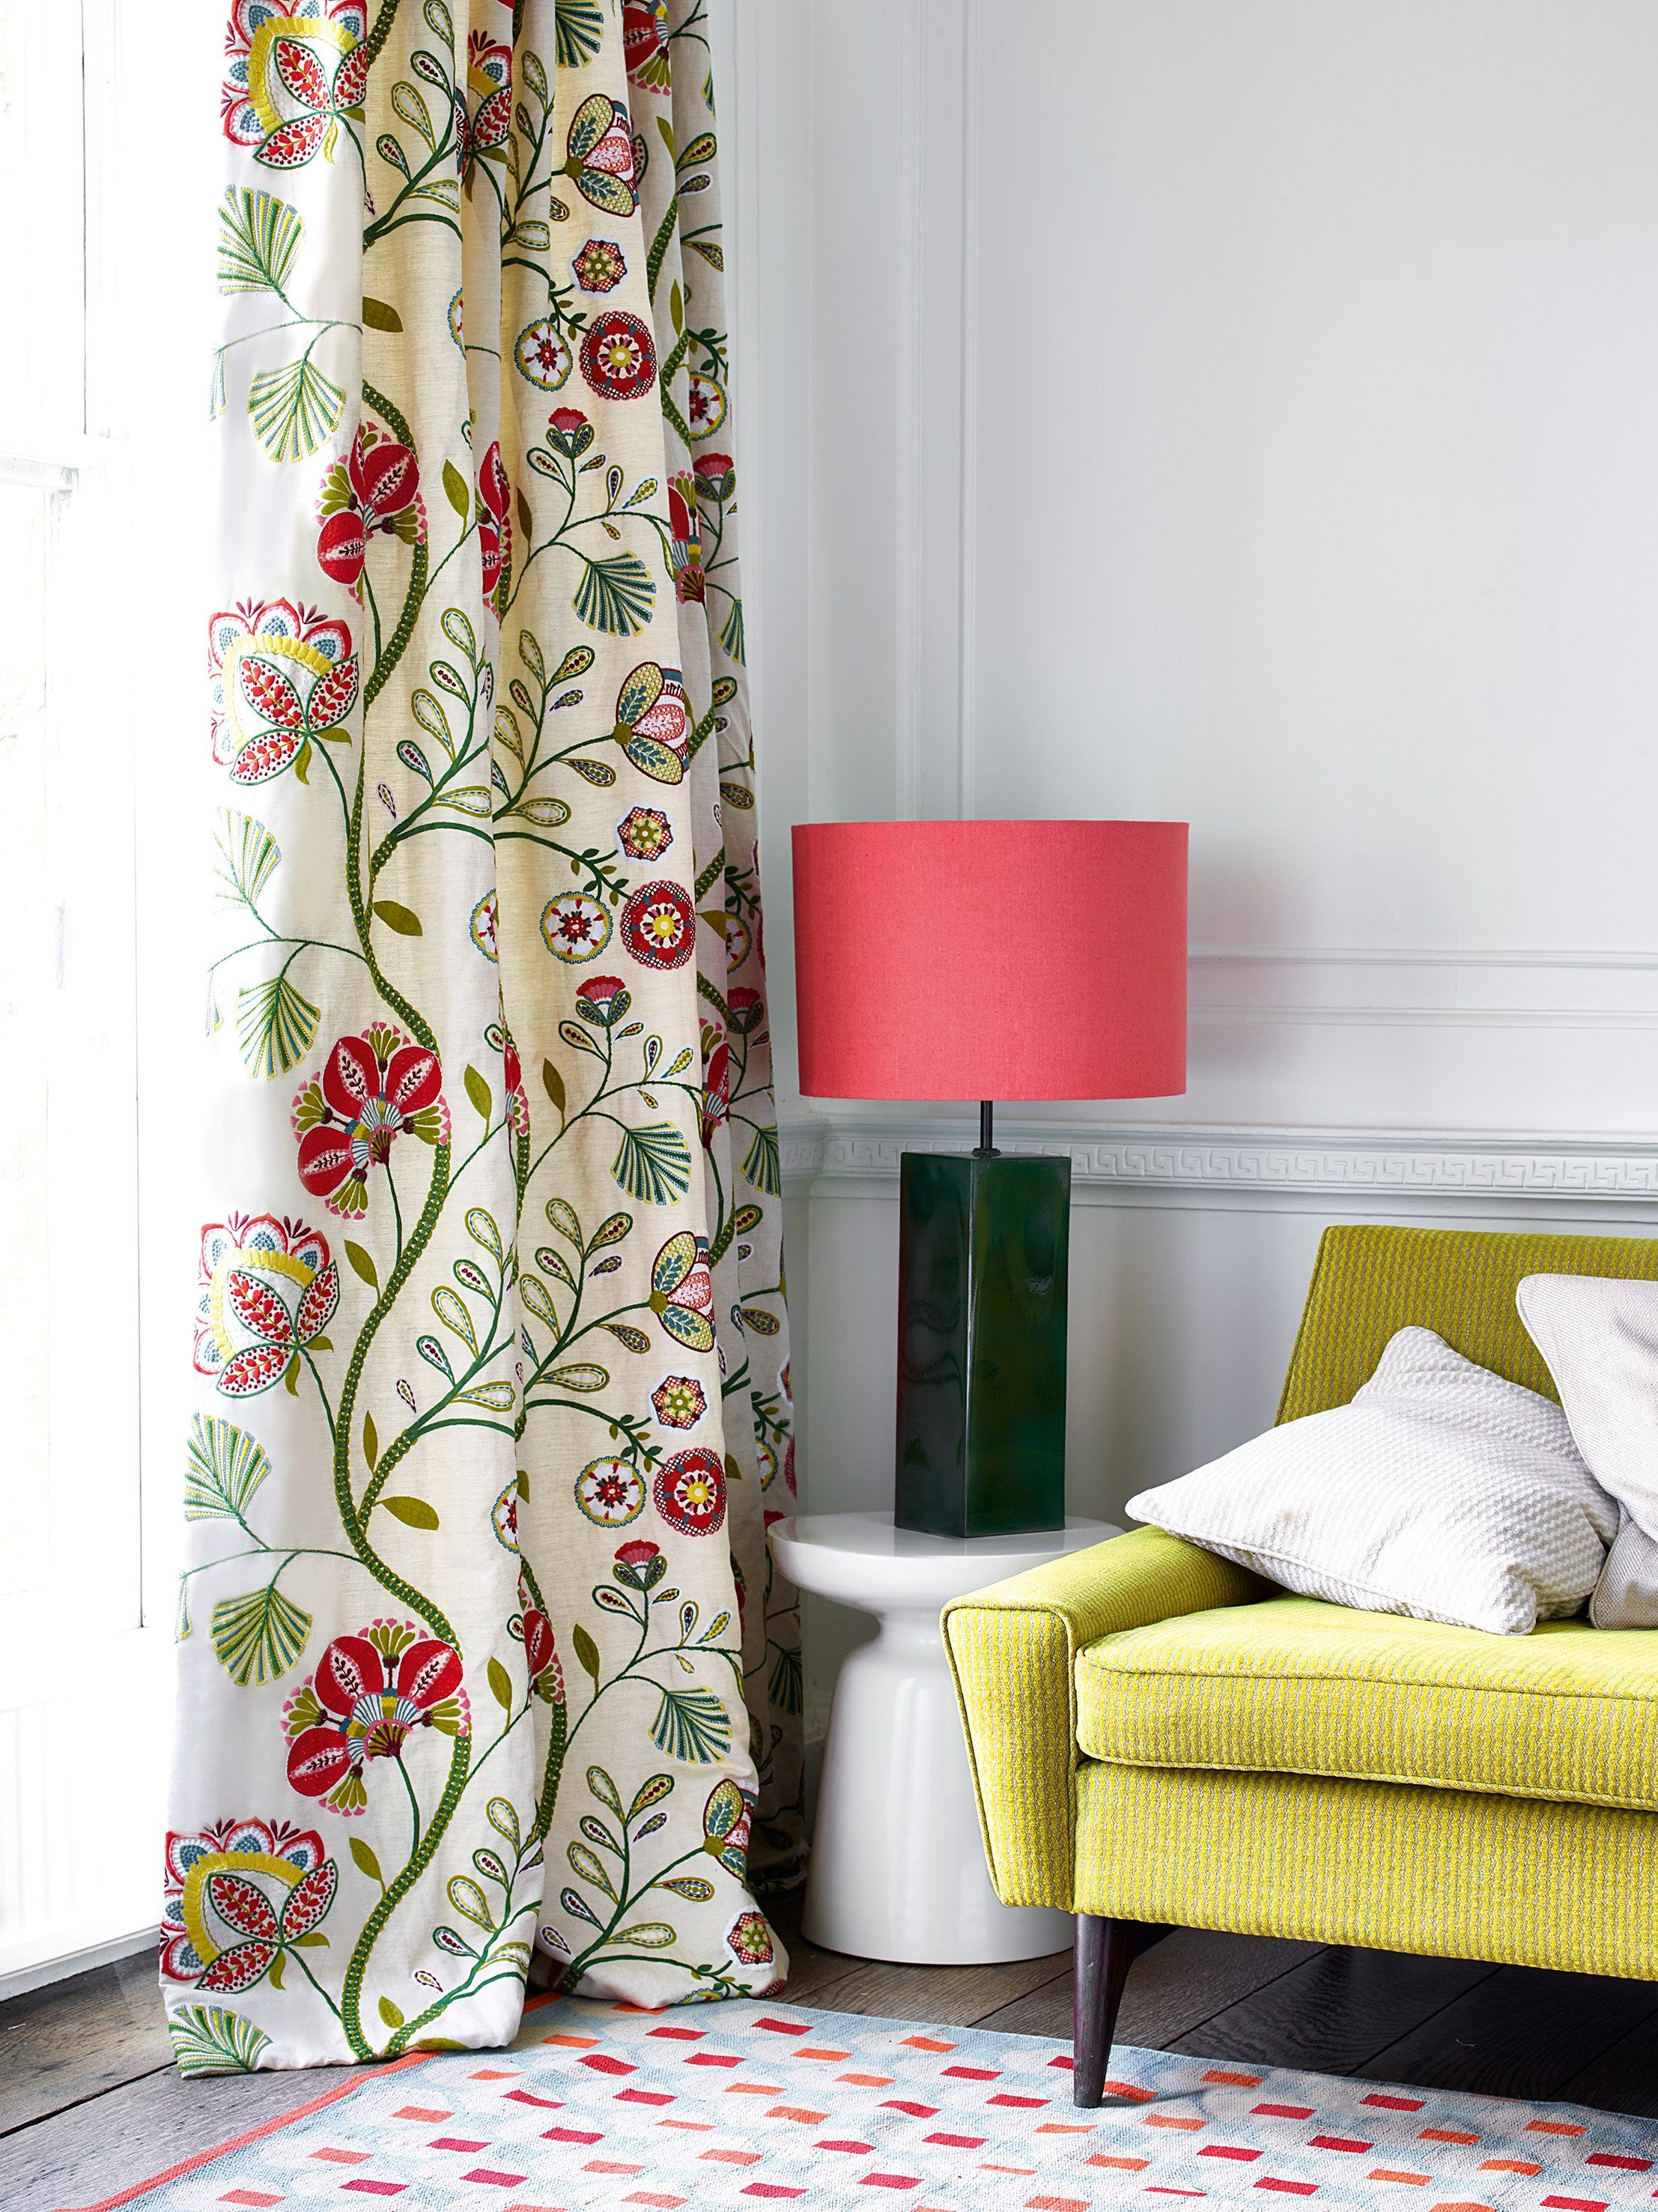 Curtain in carimbo and sofa in lucas by jane churchill sitting